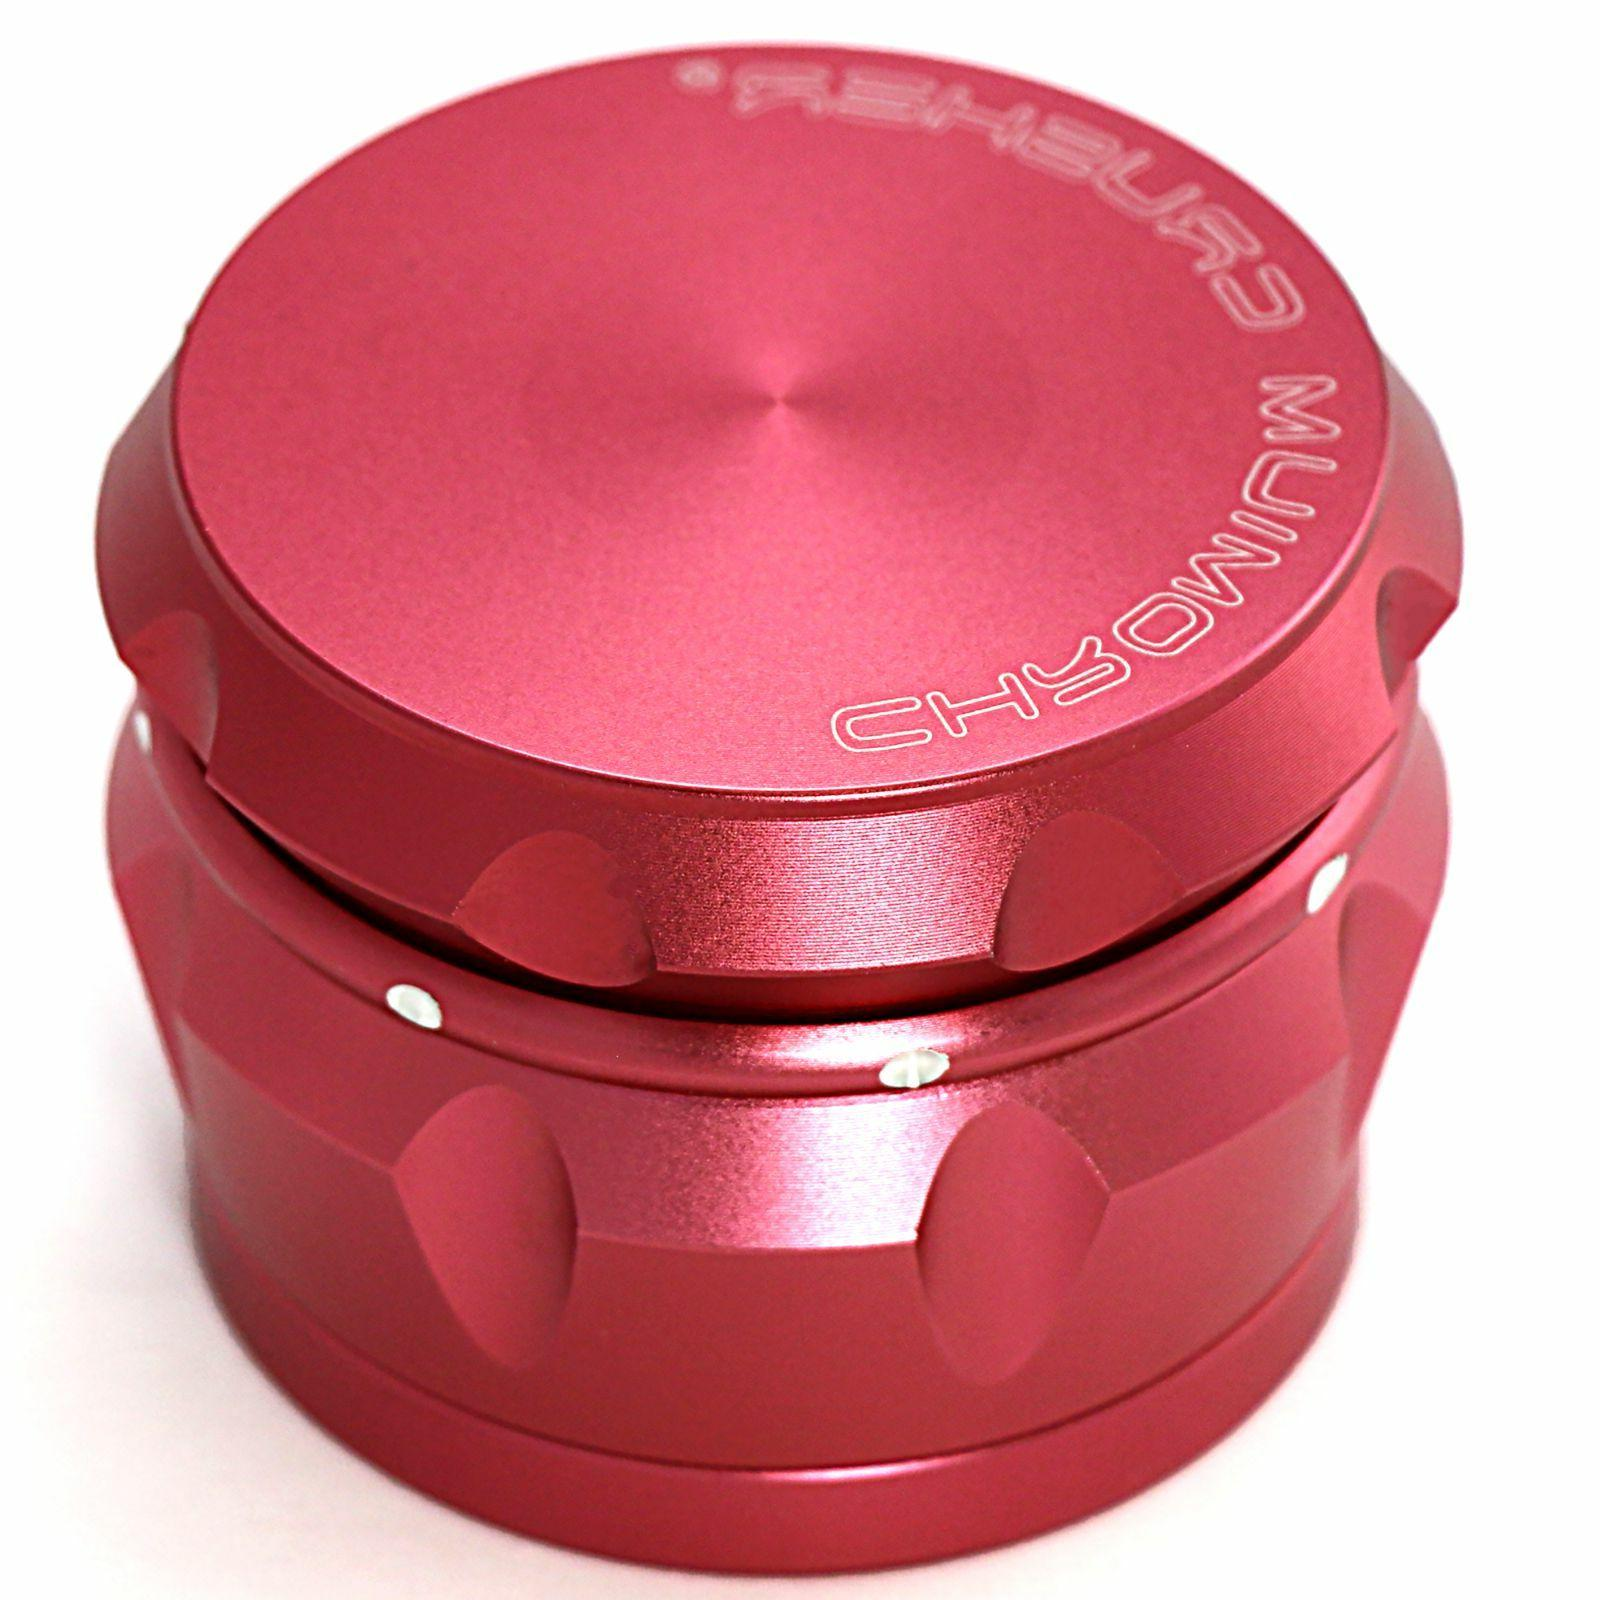 Chromium Crusher Inch Piece Tobacco Spice Grinder Passion Pink